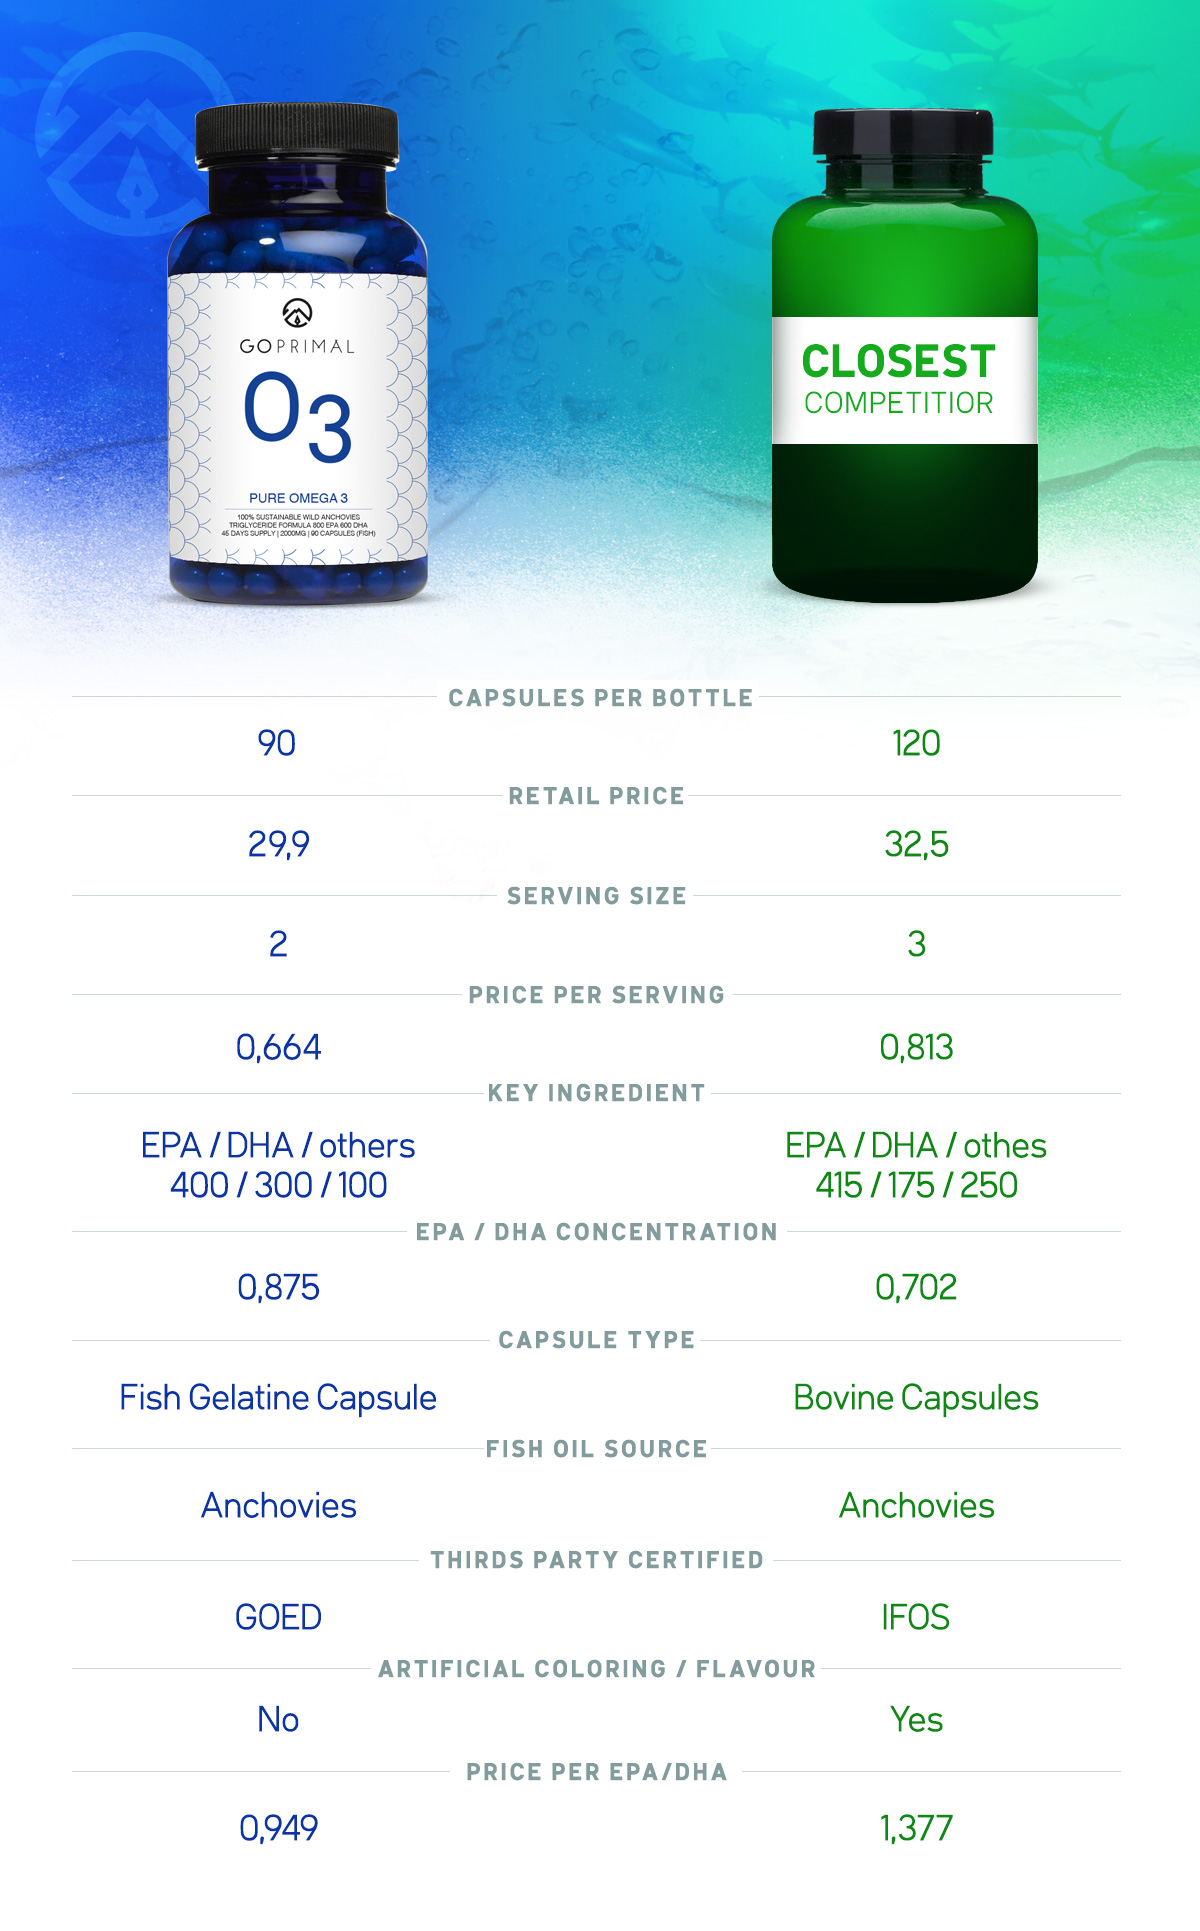 fish oil test Go Primal Omega